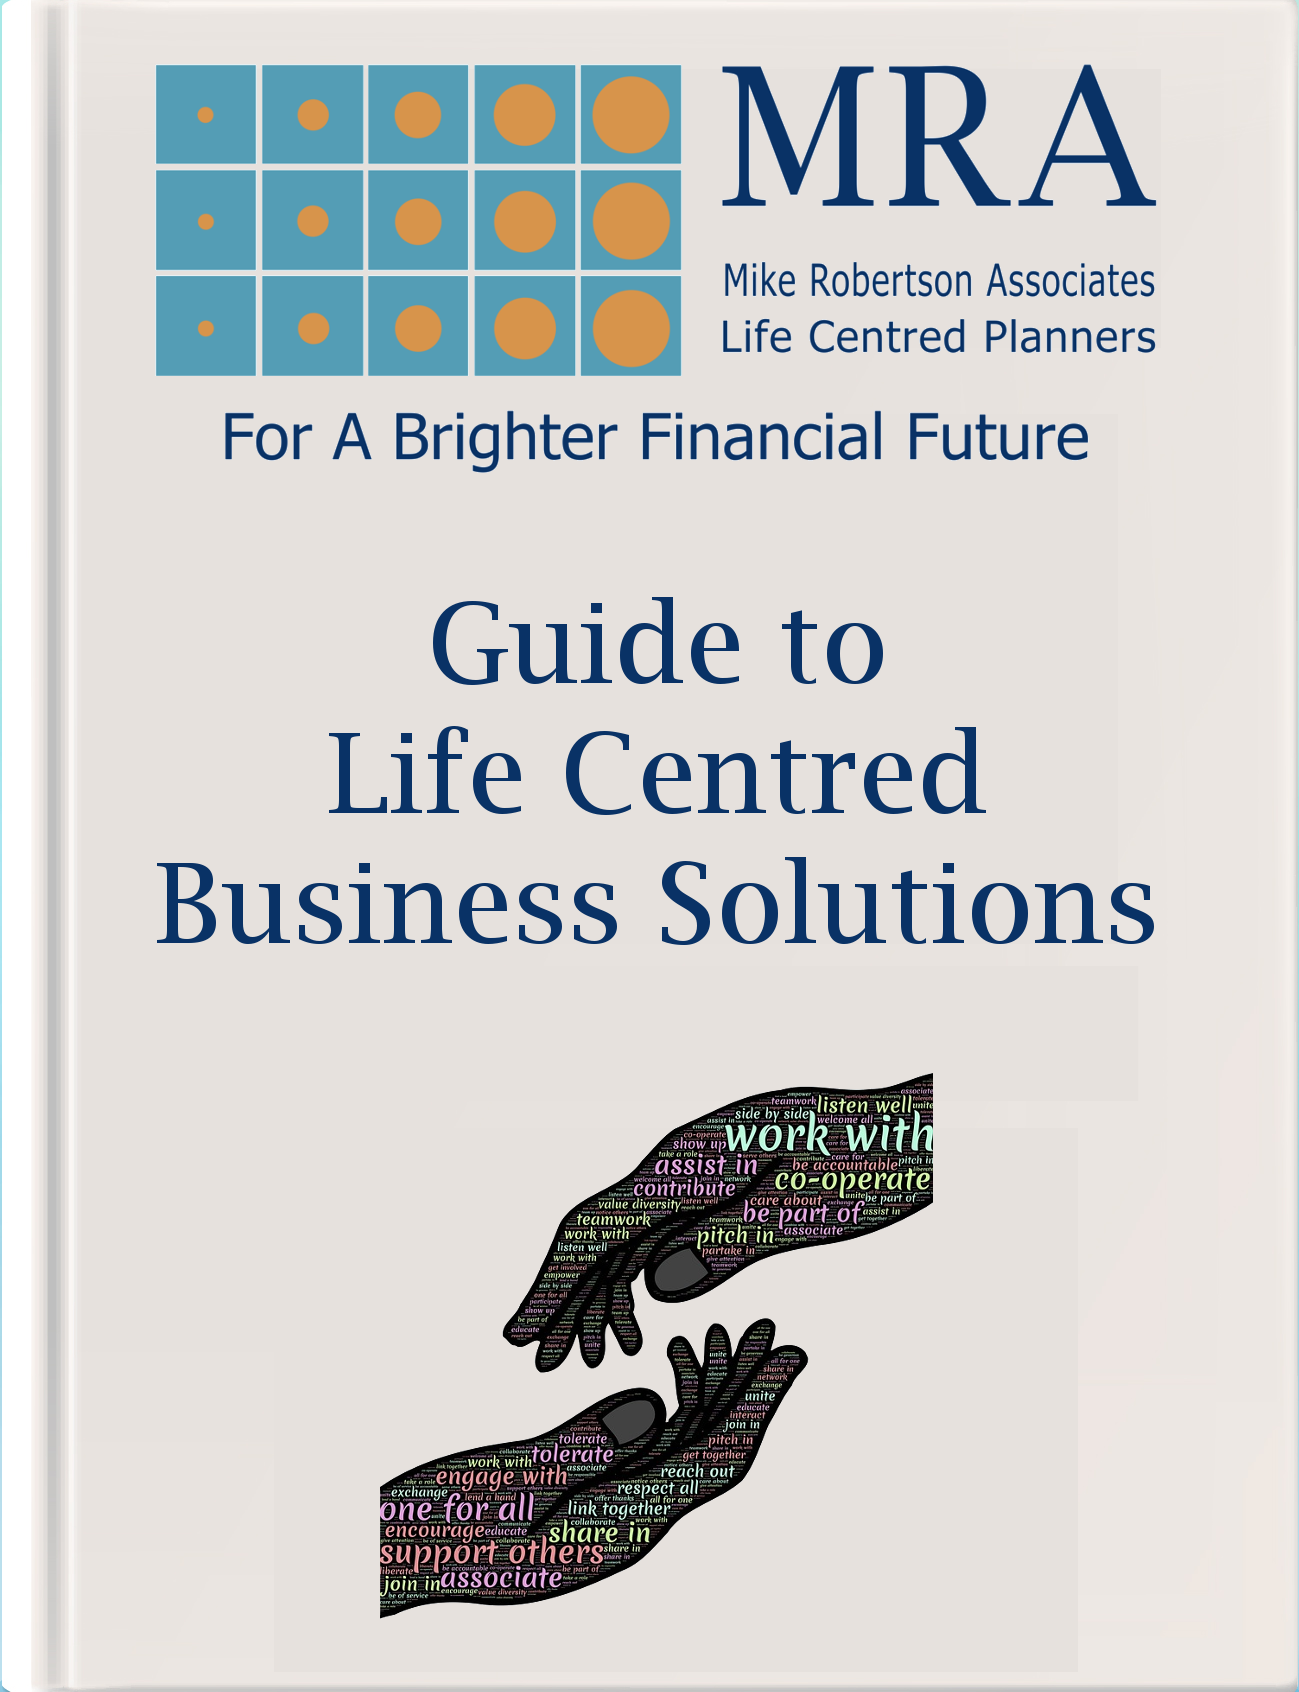 Download our Life Centred Business Solutions Guide. Lifestyle Financial Planners, Lifestyle Financial Planning, Life Centred Financial Planning, Life Centred Financial Planners, Independent Financial Adviser, Independent Financial Advisor, IFA Local, Life Style Financial Consultant, Life Centred Financial Consultant, Personal Financial Planning, Financial Planning, Personal Financial Planning, Personal Finances, Financial Consultant, Pensions, Pensions Planner, Retirement Planning, Retirement Planner, Tax Planning, Tax Planning Consultant, Tax Planning Adviser, Tax Consultant, Tax Planning Advisor, Cash Flow Budgeting, Banking, Insurance, Term Assurance, Mortgage Consultant, Mortgage Adviser, Mortgage Advisor, Mortgages, Savings, Pesonal Savings, Investments, Estate Planning, Estate Planner, Later Life Planning, Wealth Management, Business Adviser, Business Consultant, Forecasting, Investments, Portfolio Planning, Financial Guidance, Financial Security, Family Protection, Critical Illness, Critical Illness Planning, Critical Illness Protection, Tax Efficient Savings, Tax Planning, Tax Efficient Investments, Saving For Long Term Goals, Savings For Long Term Care, Life Centred Financial Advice, Life Centred Adviser, Life Centred Advisor, Life Centered Planning, Life Centered Adviser, Cash Flow Forecasting, Residence Nil Rate Band, Land Registry, Tracing Land Registry Form, Financial Planning, Financial Planners, Work To Live Financial Planning, What is Inflation, How to beat Inflation, Selling a property in a limited company, SSAS Pensions, SSAS Pension, What is a SSAS, What is a SIPP, SIPP Planning, SSAS Planner, SIPP Planner, SSAS Planning, Stakeholder Pansions, Financial Freedom Reviews, When Can I Draw My State Pension, Saving Money, Ways To Save Money, Ways To Save money on a Tight Budget, Land Registry, What is An Annuity, Annuities, Lower My Bills, Nil Rate Band, Inheritance Tax Advice, Essential Corporate Solutions, Inheritance Tax Residence Nil Rate Band, Debt Relief Order, Life Planning, Financial Advice East Sussex, Mike Robertson, Split The Bills, The Residence Nil Rate Band, The Best Saving Schemes, What is a Venture Capital Trust, What Is A VCT, What Is A EIS, What Is An Enterprise Investment Scheme, Is A Financial Planner Important, What Can a Financial Planner do for me, Do I need Financial Planning, Do I need Financial Planning, Do I need a Financial Planner, Do You Need a Financial Adviser, Eight Steps to choosing a Financial Adviser, Getting Financial Advice, Need Financial Planning, Why Do You need a Financial Adviser, What is A Financial Adviser, Pensions Advice